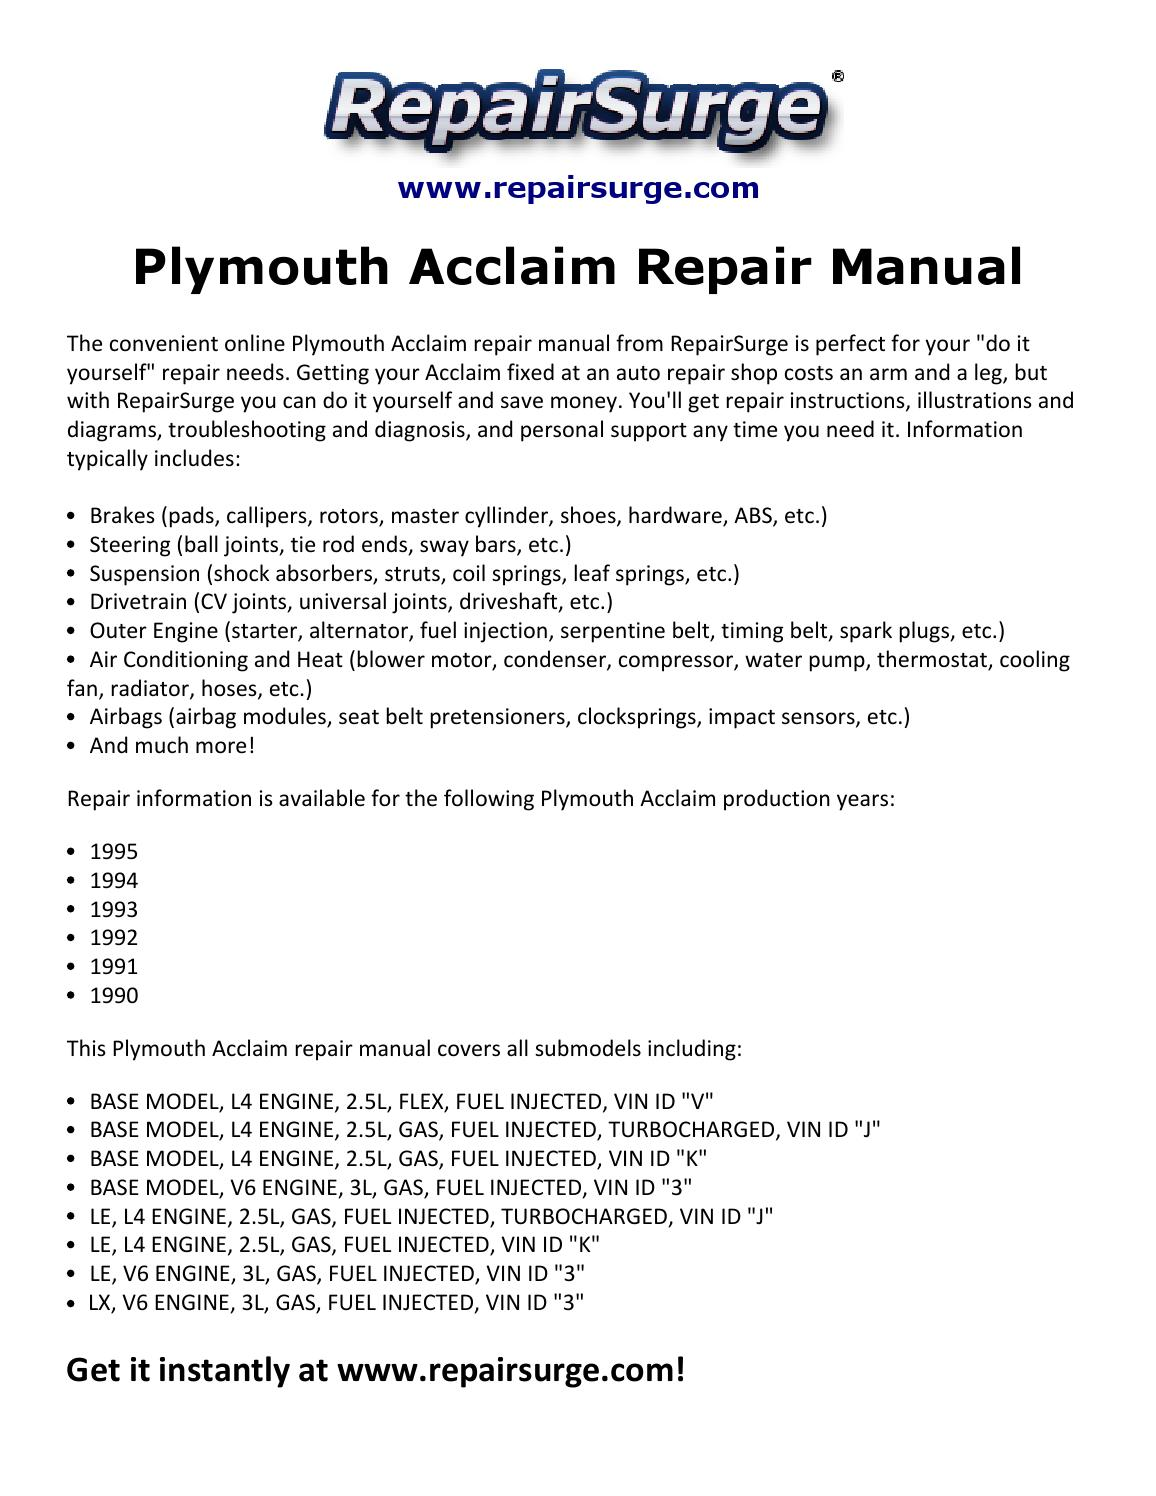 plymouth acclaim repair manual by david williams issuu